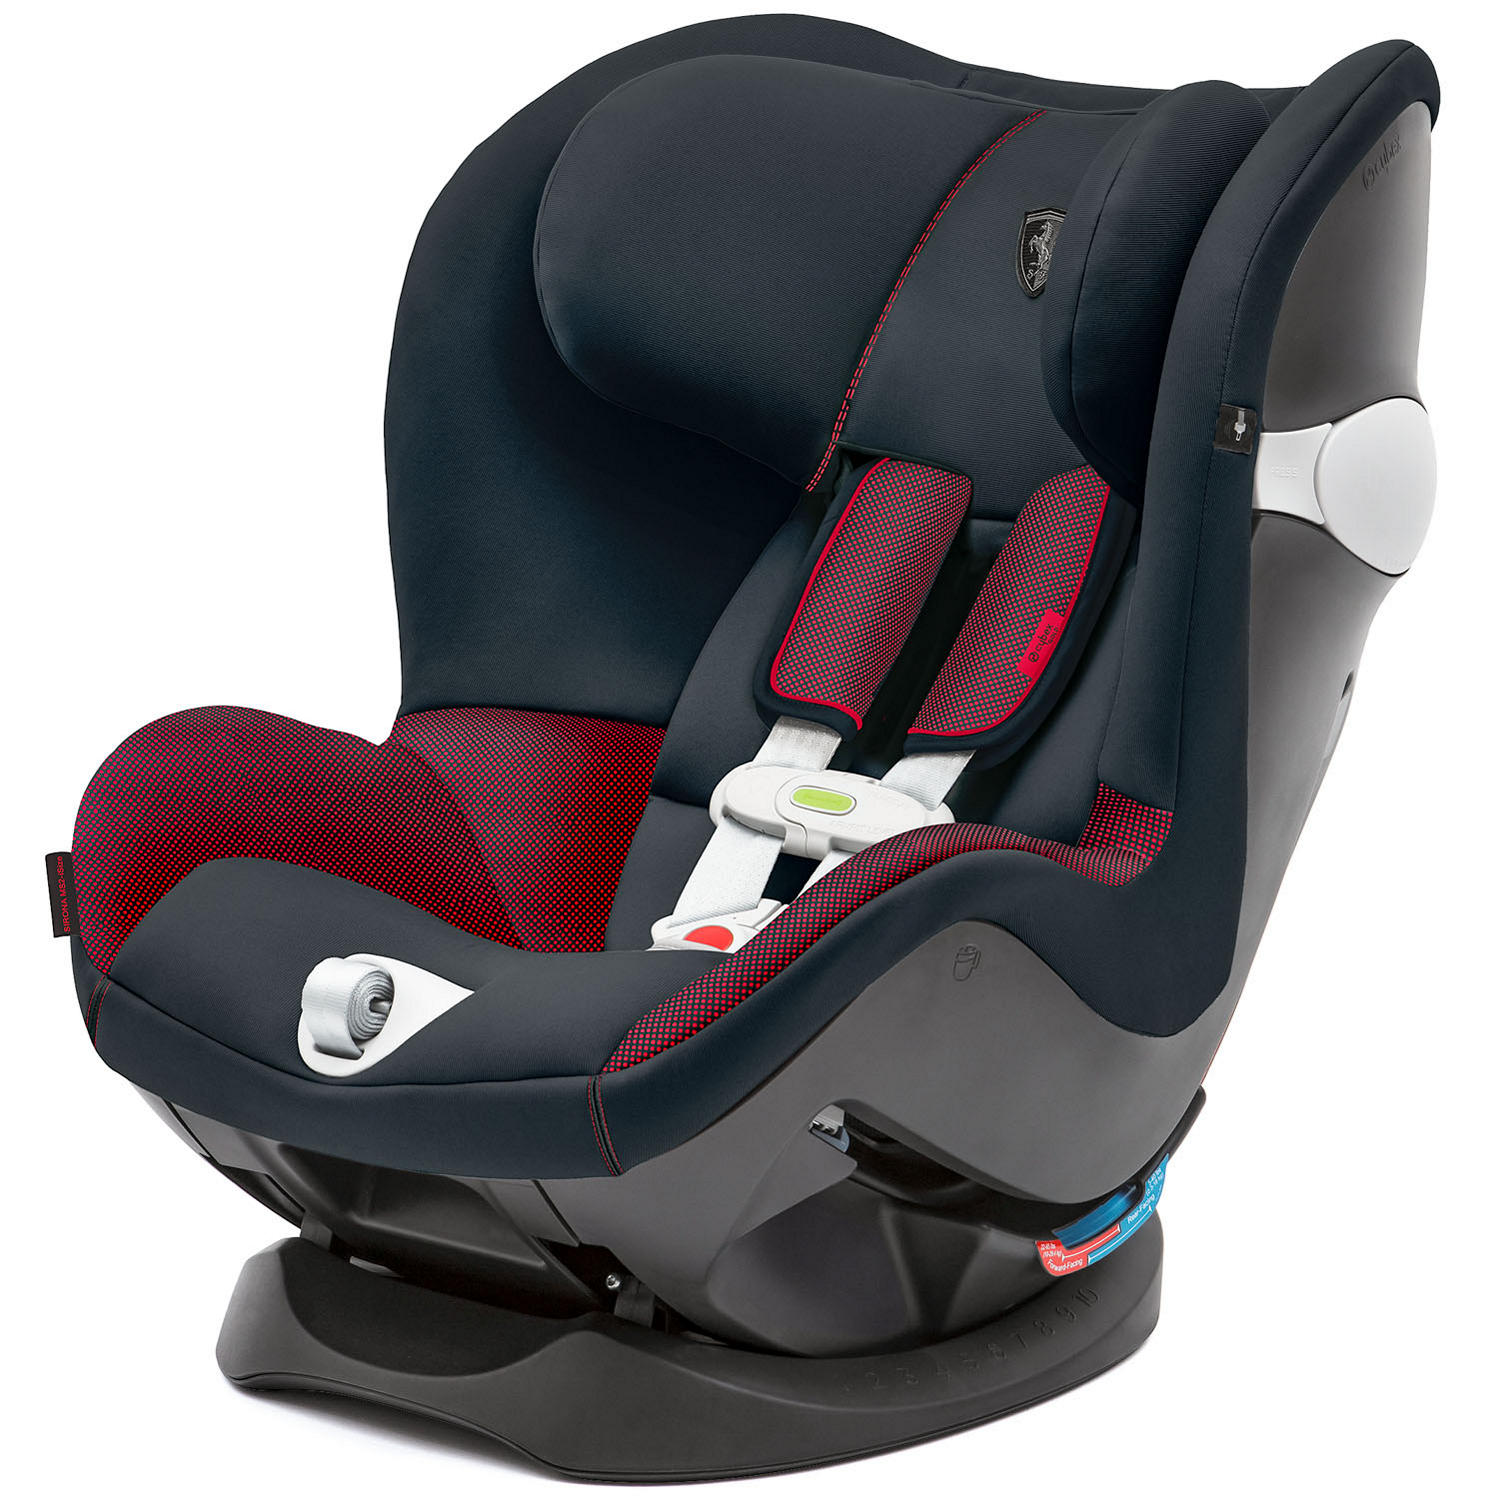 Cybex Sirona M Car Seat with SensorSafe 2.0, Ferrari Collection in Victory Black